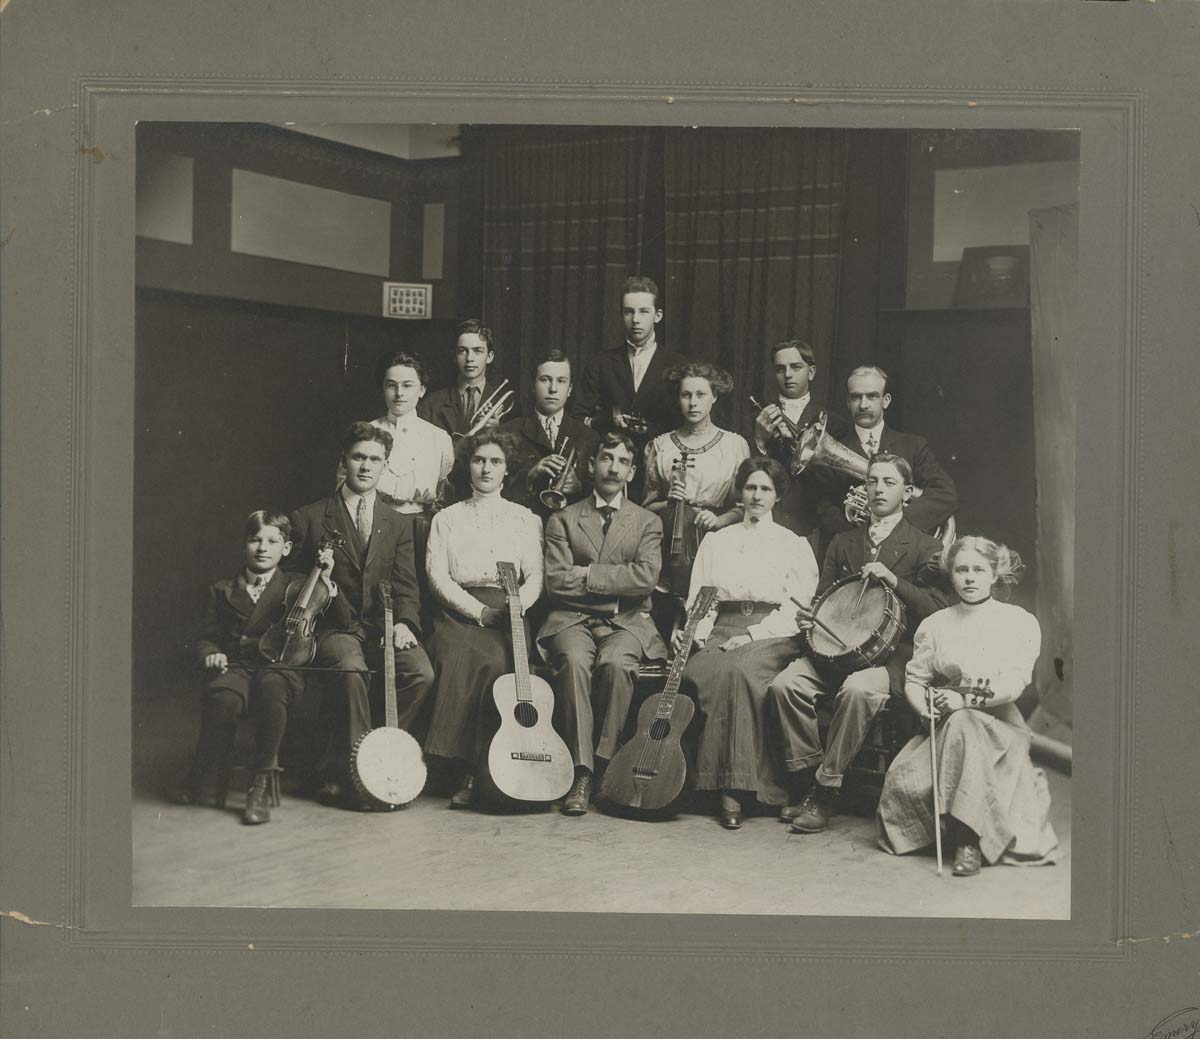 Vancouver High School Orchestra in 1910, managed by Professor F. Clyde Leathers. Photo courtesy of Clark County Historical Museum. Photo courtesy of Clark County Historical Museum